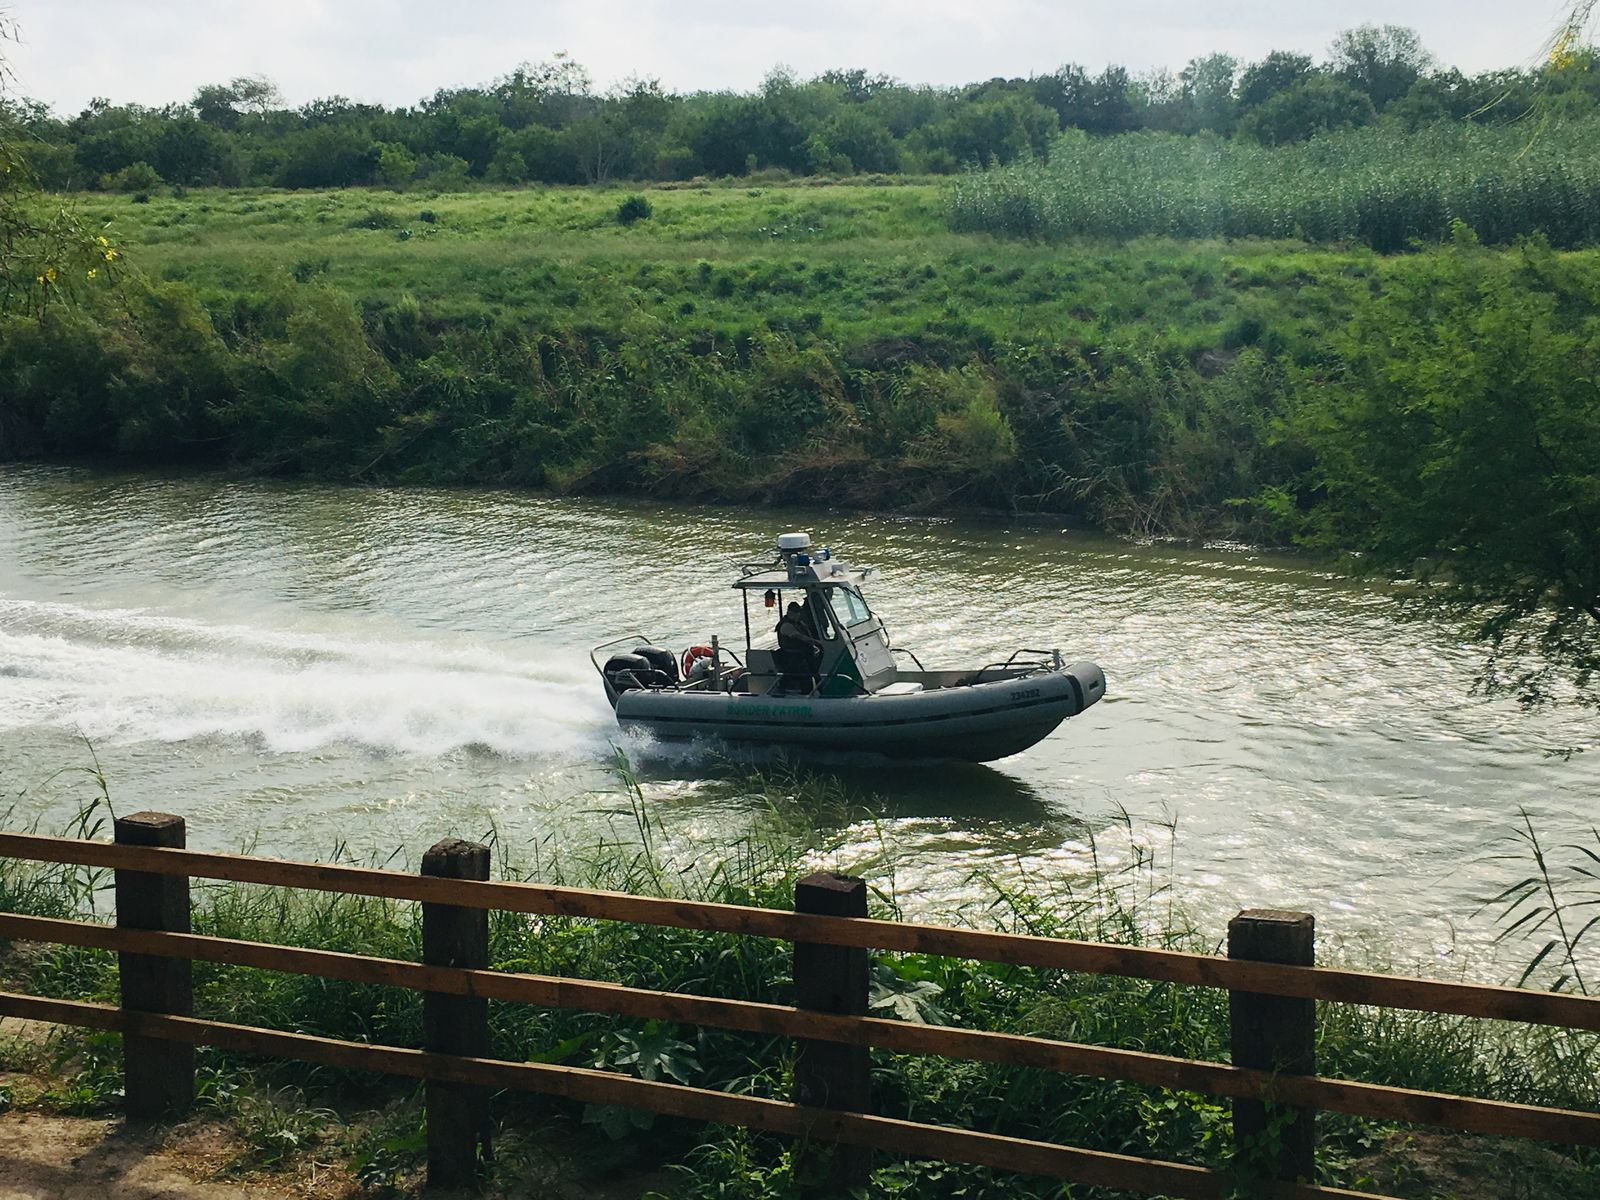 A U.S. Border Patrol boat navigates the Rio Grande near where the bodies of Salvadoran migrant Oscar Alberto Martínez Ramírez and his nearly 2-year-old daughter Valeria were found, in Matamoros, Mexico, Monday, June 24, 2019, after they drowned trying to cross the river to Brownsville, Texas. Martinez' wife, Tania told Mexican authorities she watched her husband and child disappear in the strong current. (AP Photo/Julia Le Duc)